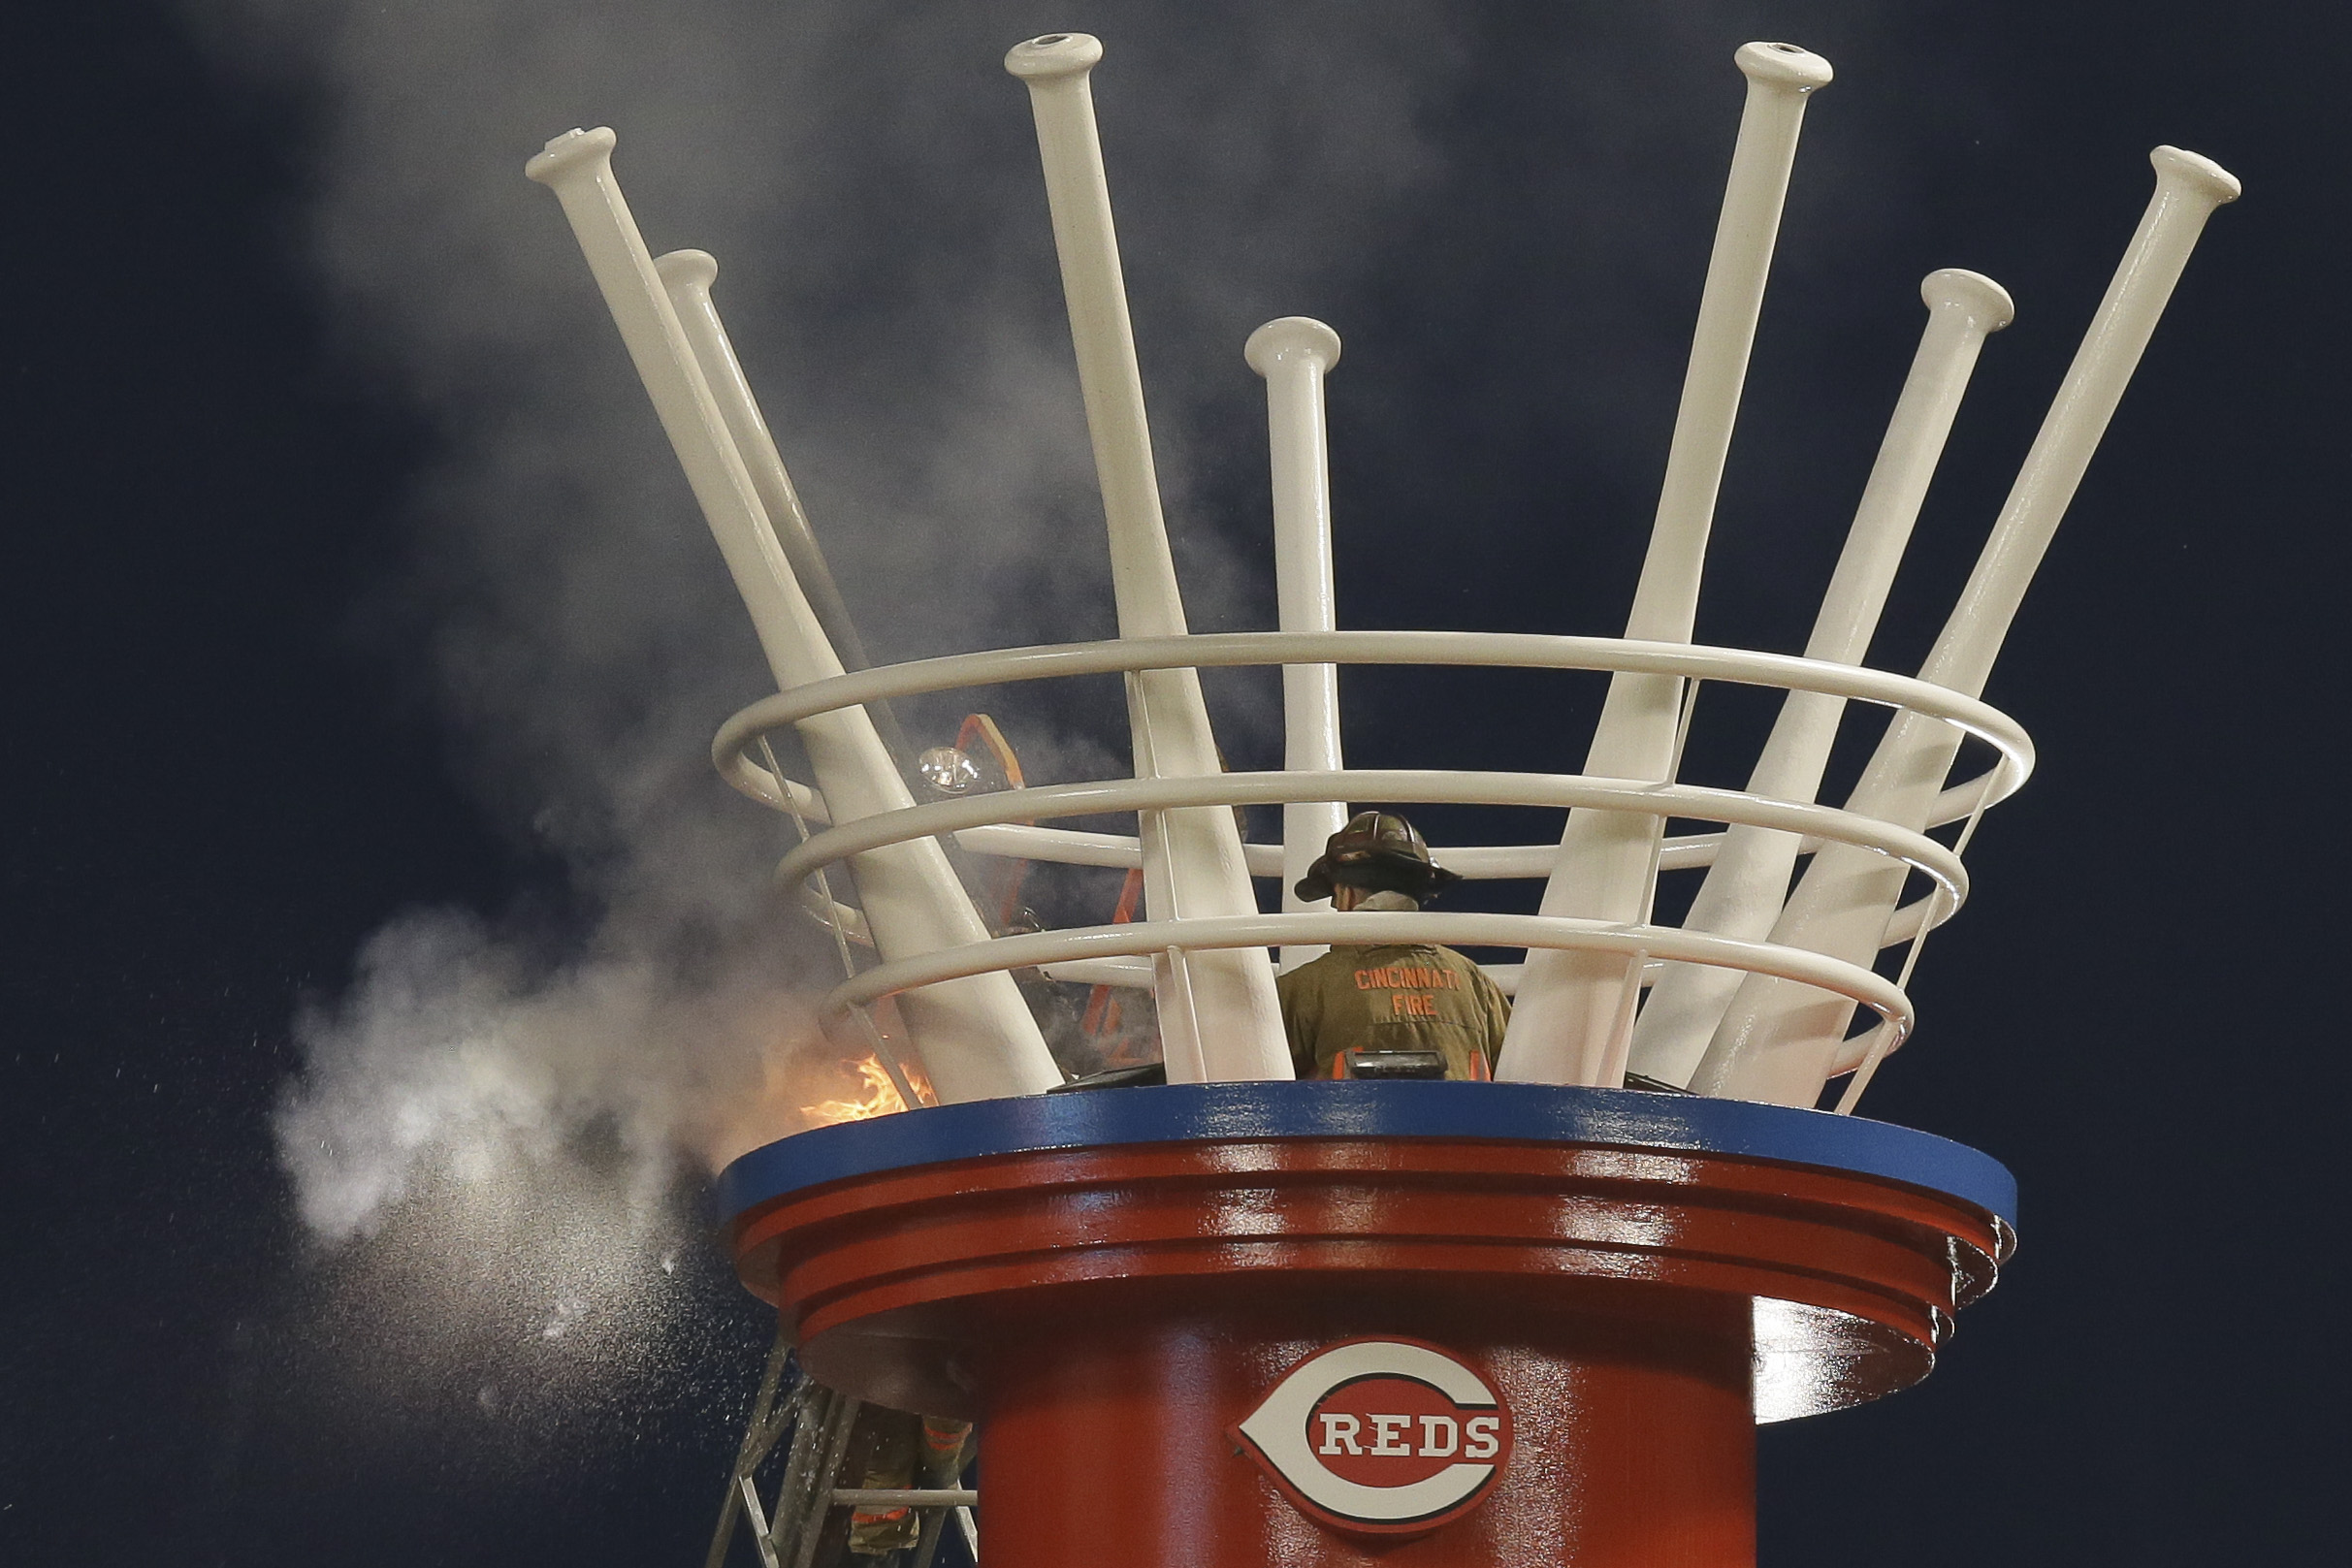 A firefighter hoses down a blaze in one of the outfield stacks at Great American Ballpark in the sixth inning of a baseball game between the San Francisco Giants and the Cincinnati Reds, Friday, May 15, 2015, in Cincinnati. (AP Photo/John Minchillo)